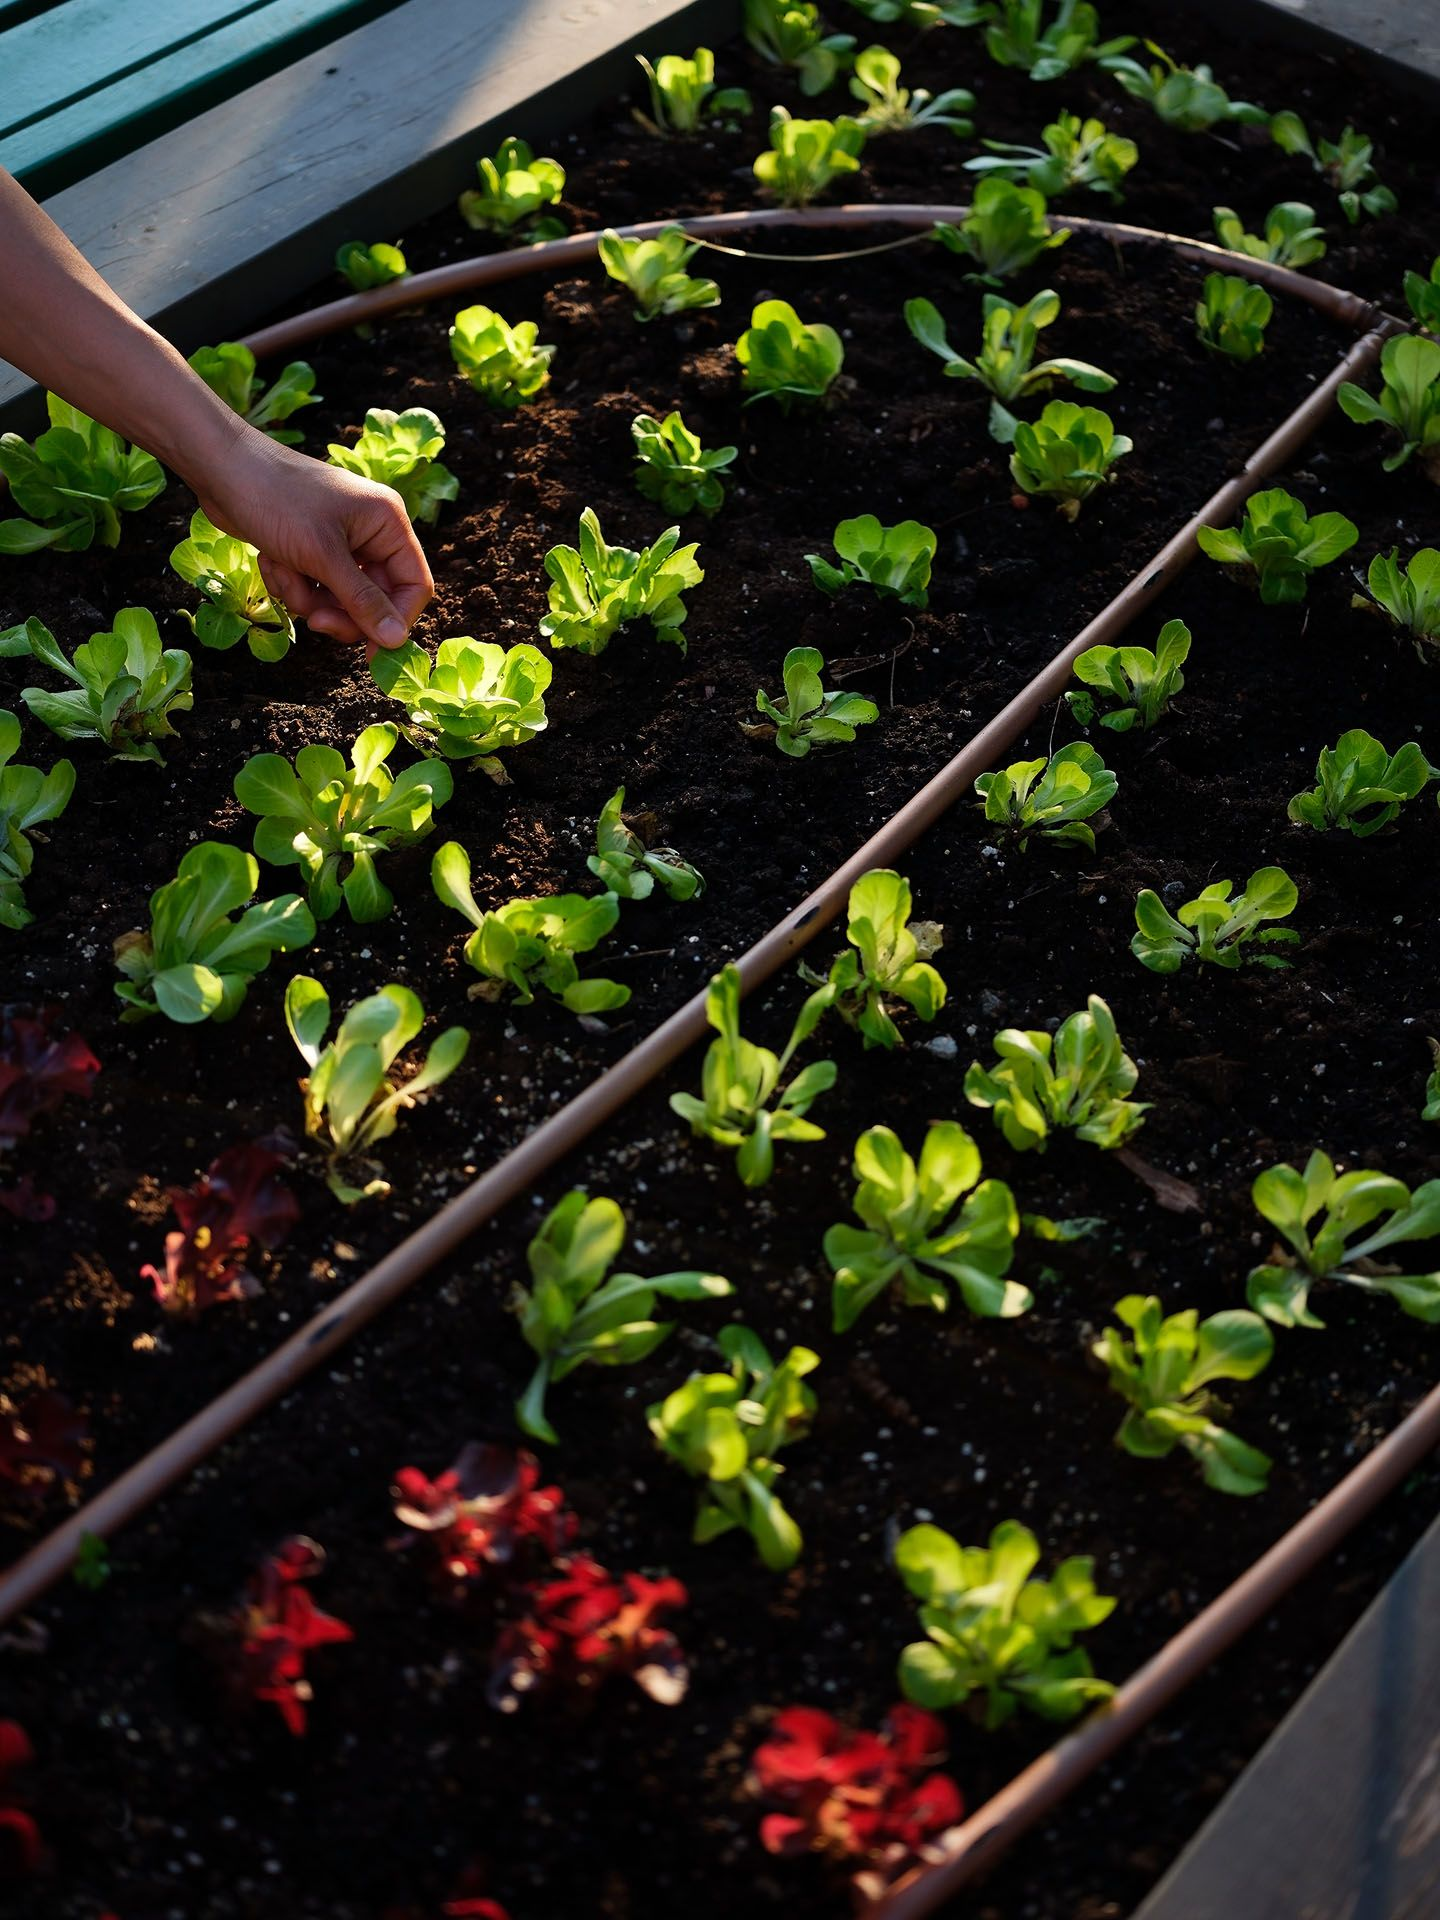 hand checking lettuces in the dirt in vegetable garden photographed by Guillaume Simoneau as part of Off Duty Montreal series for The Wall Street Journal magazine